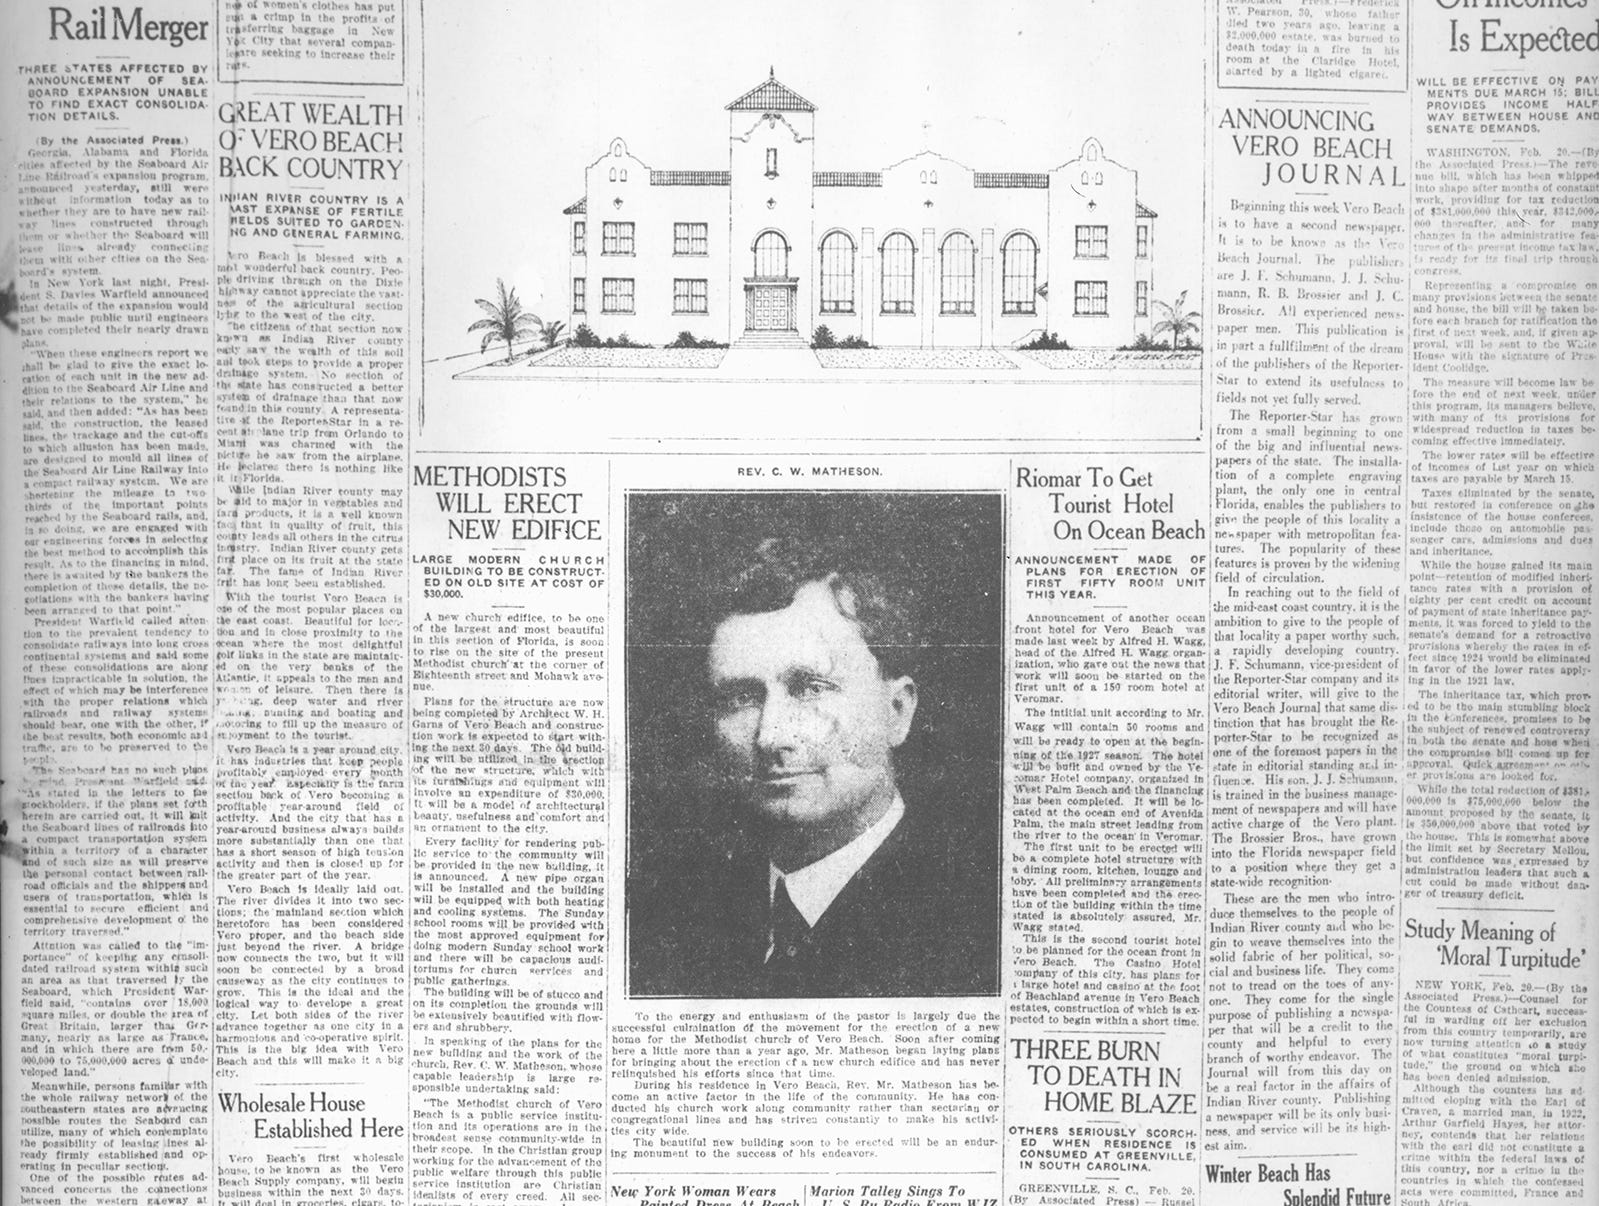 February 21, 1926 - Announcing Vero Beach Journal